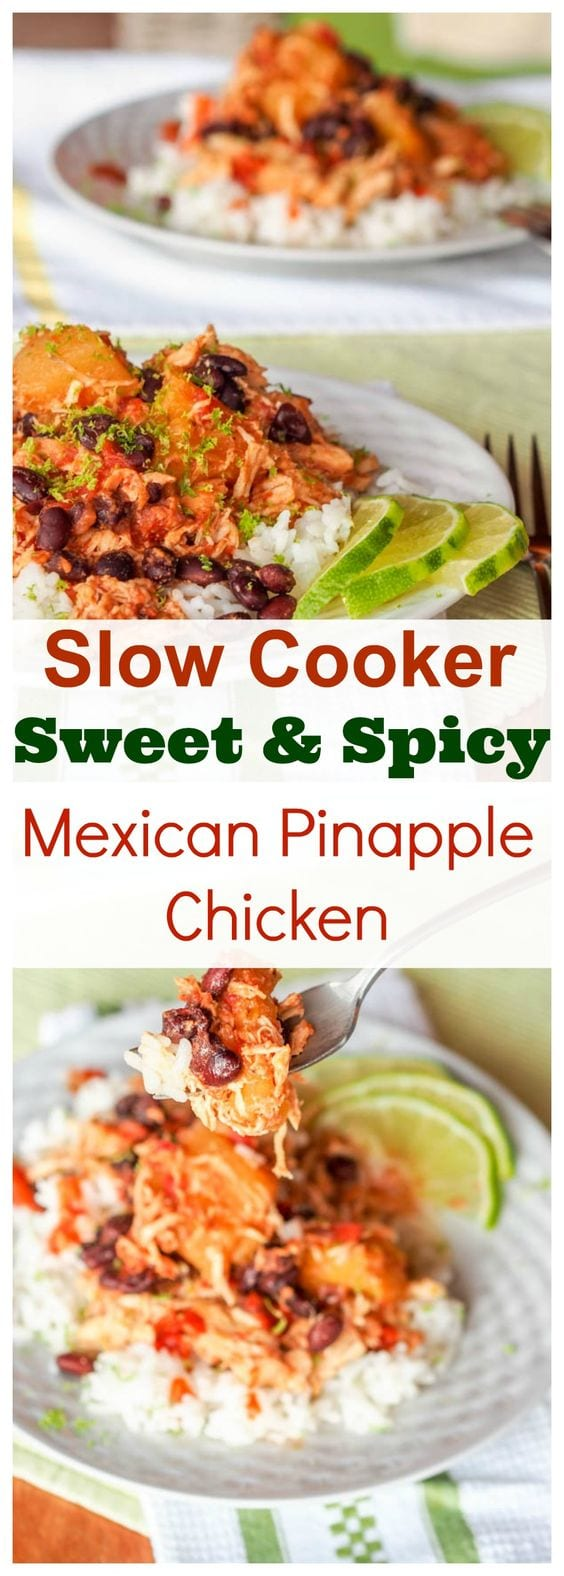 Only six key ingredients and a handful of spices required for this one pot low fuss slow cooker spicy Mexican pineapple chicken. The perfect balance of sweet and spicy all at once with tender shredded chicken and hearty black beans. Gluten Free and Dairy Free too. #slowcooker #mexican #chicken #healthy #dinner